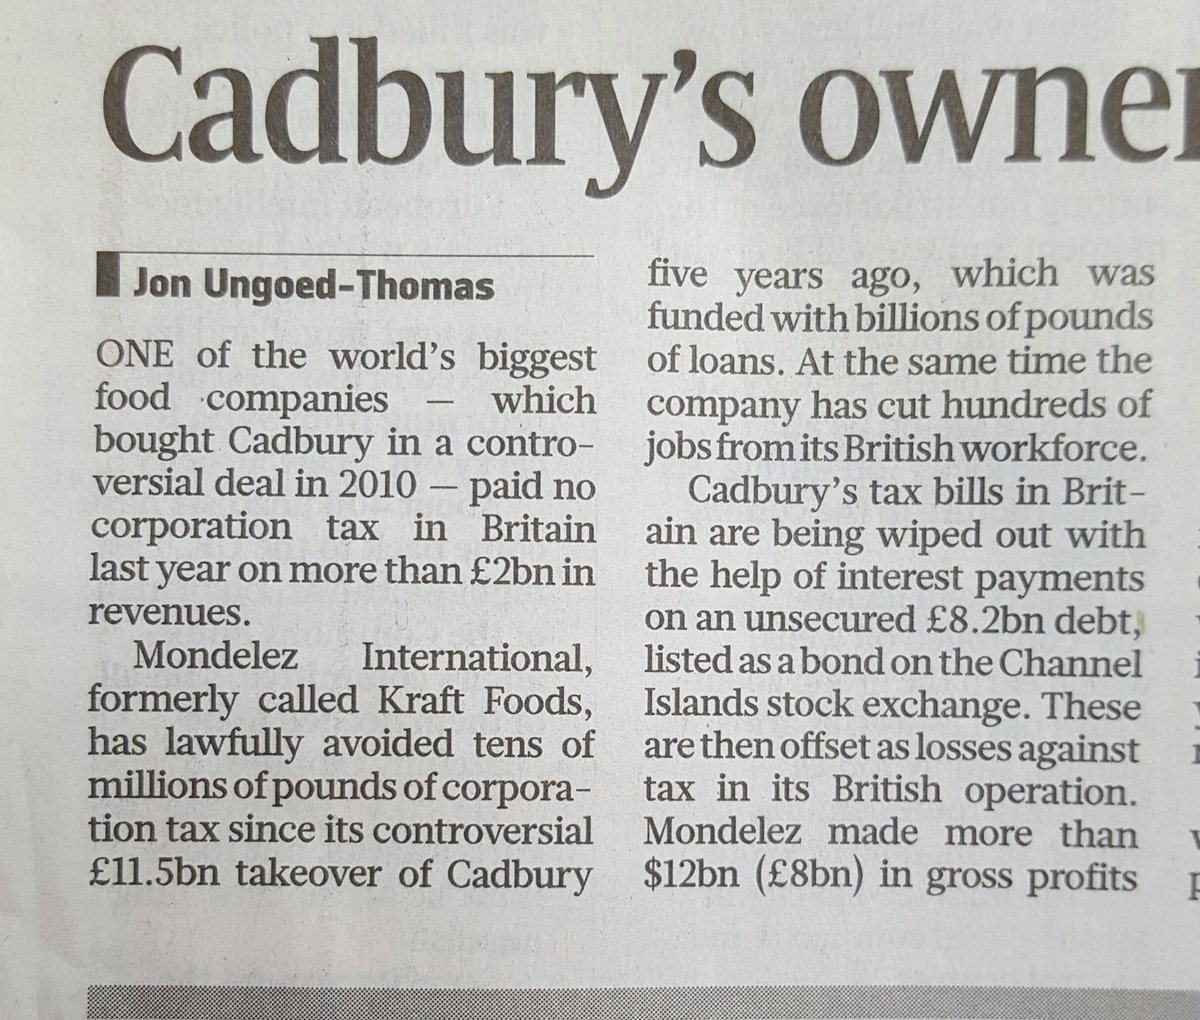 What has happened to Cadbury's is so sad. Once the very best of socially pioneering businesses. https://t.co/GEneaiCUrW